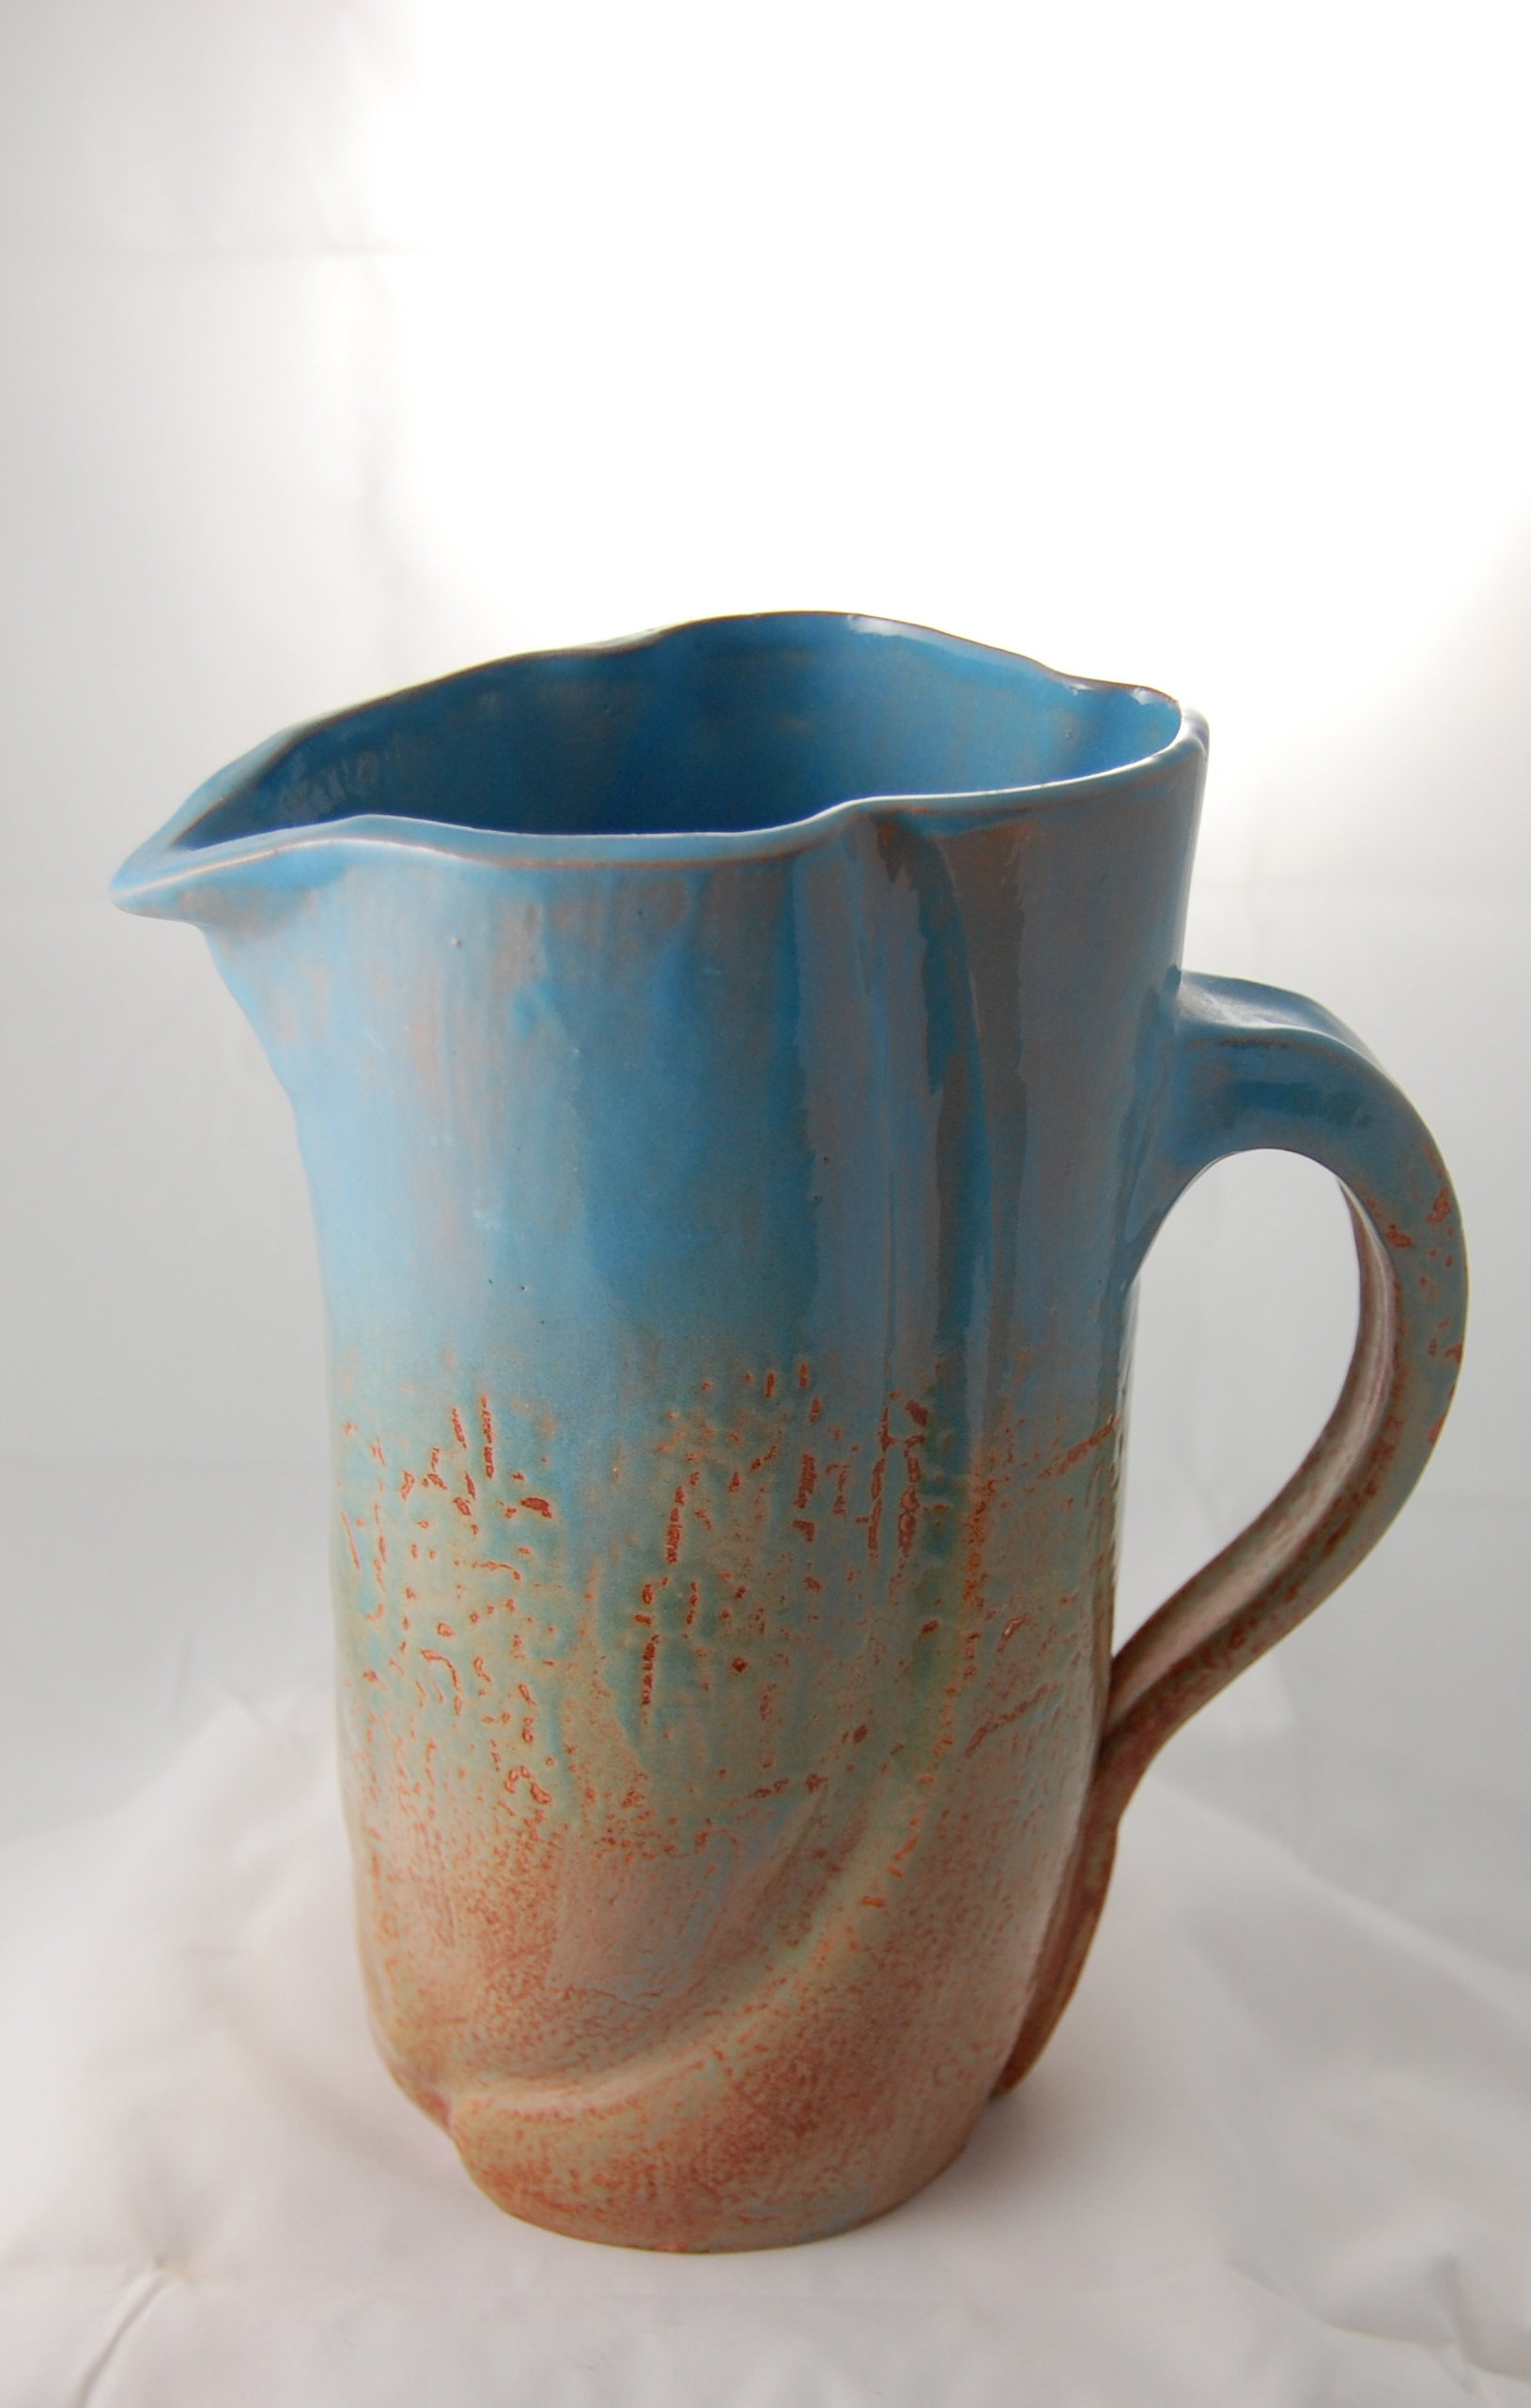 Slab built and altered pitcher. Functional pottery that delights they eye, by Lisa Codella.